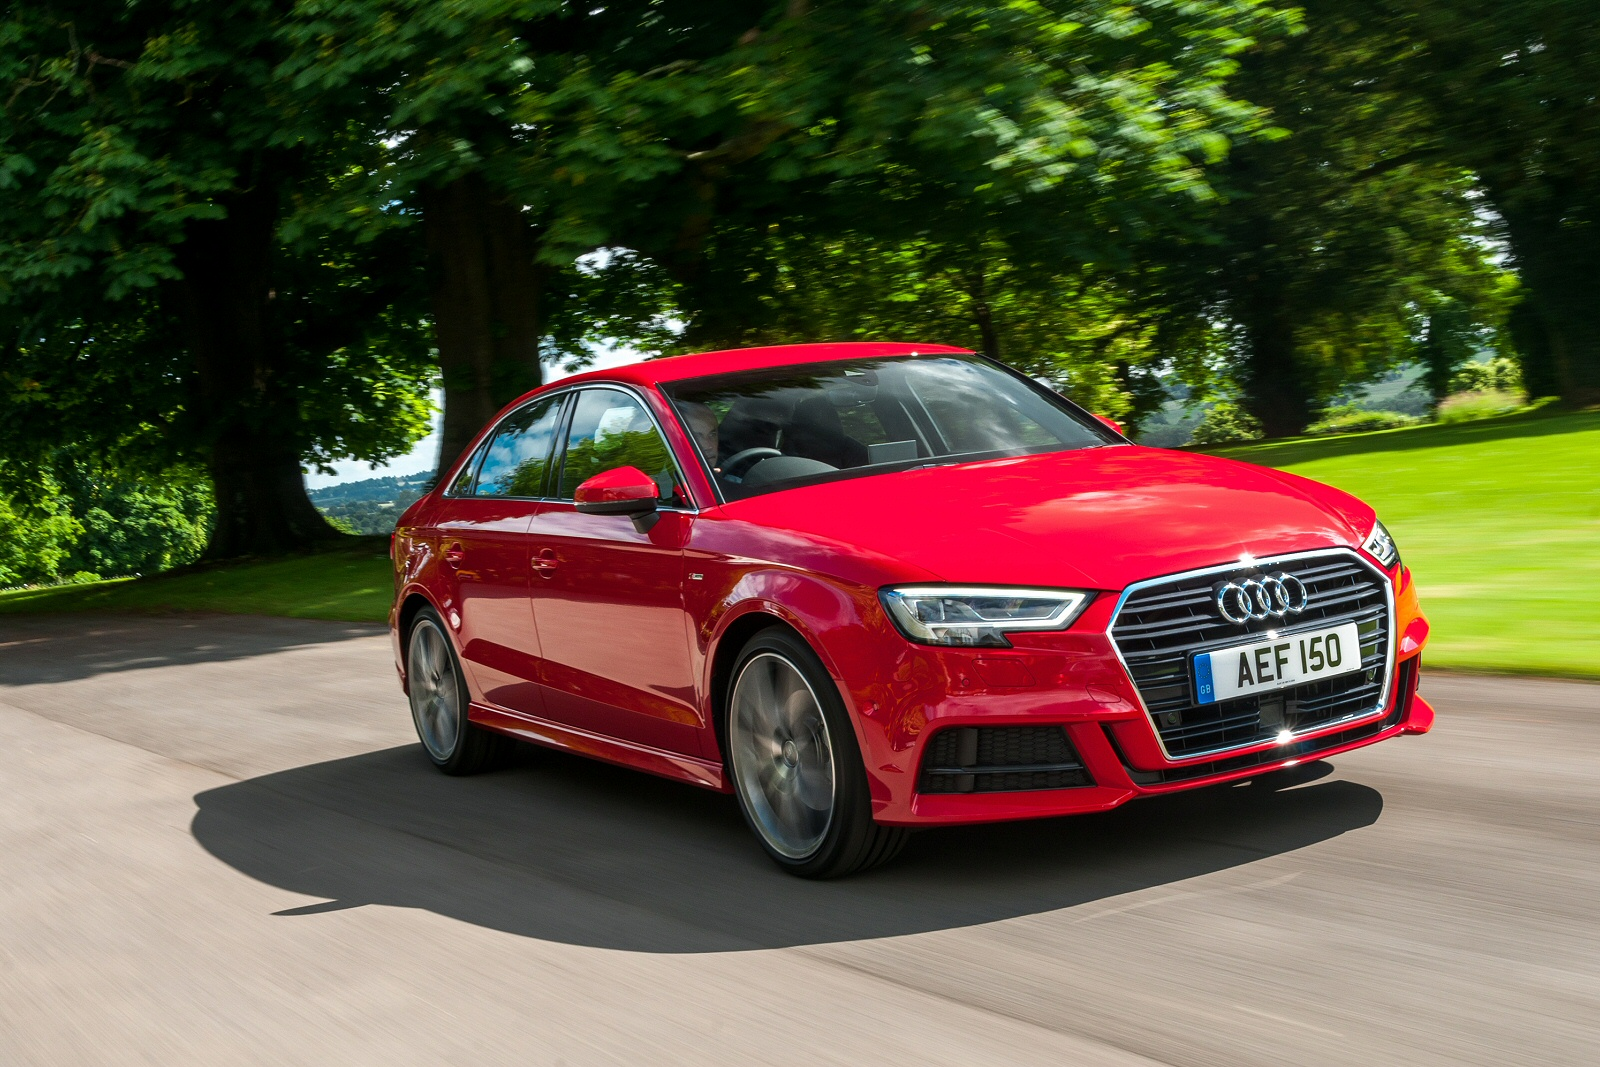 new audi a3 30 tdi 116 sport 4dr s tronic diesel saloon. Black Bedroom Furniture Sets. Home Design Ideas